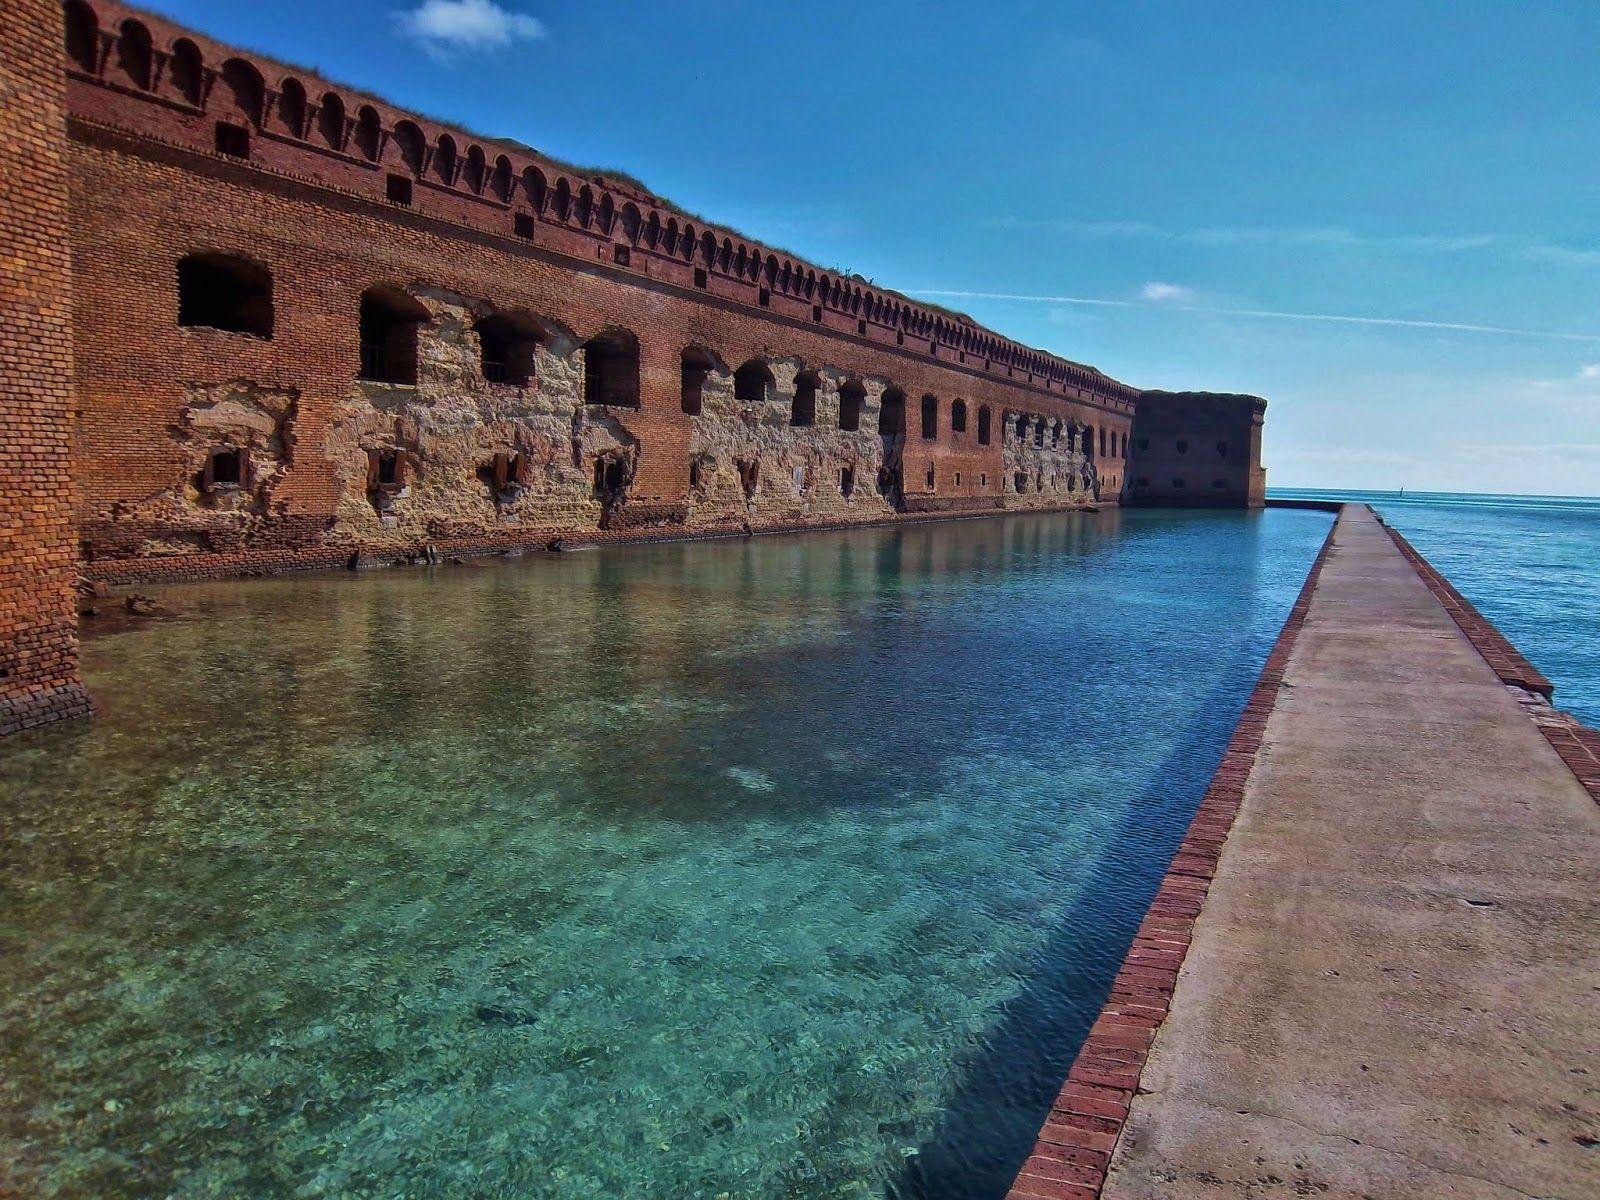 Terry's Travel: Key West & Fort Jefferson